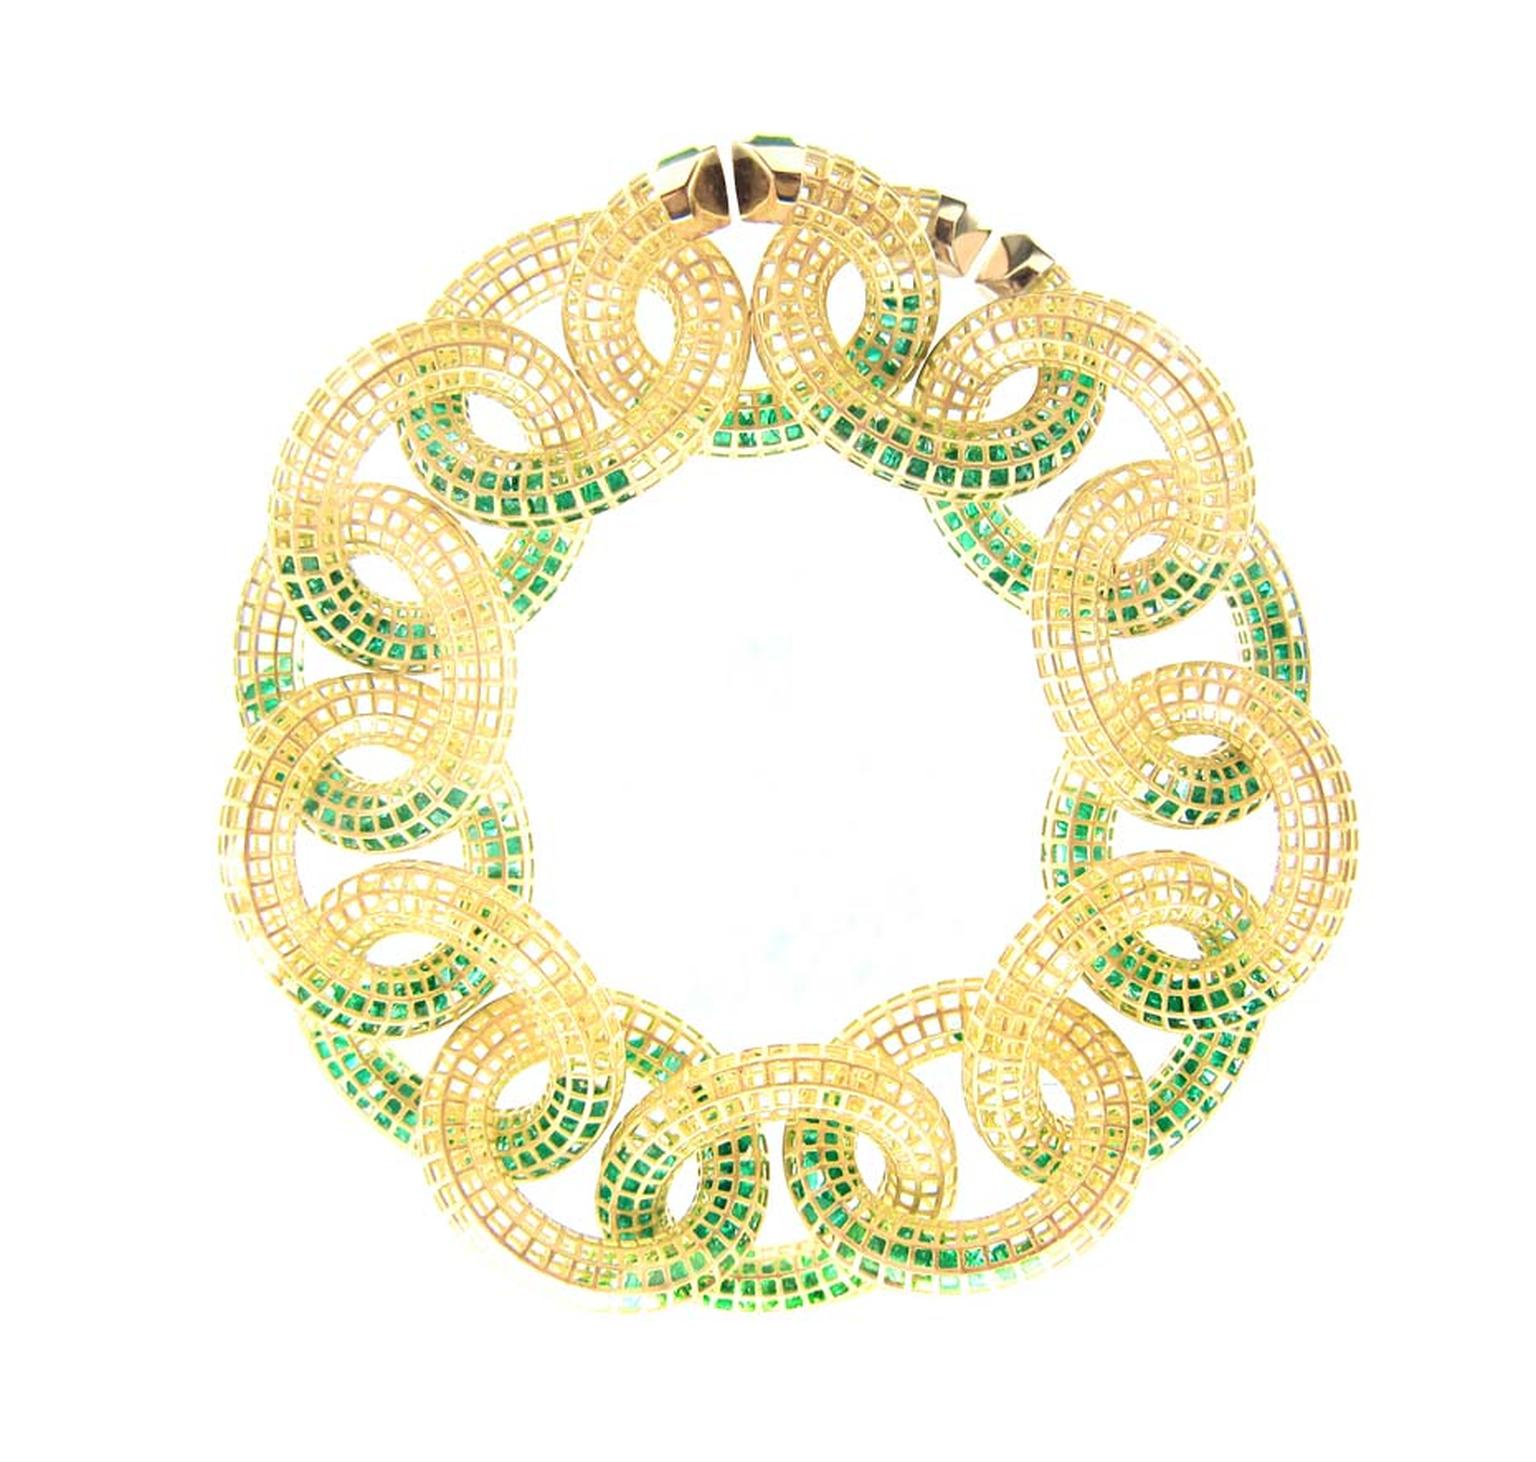 Roule & Co Shaker chainlink bracelet in yellow gold and emeralds.